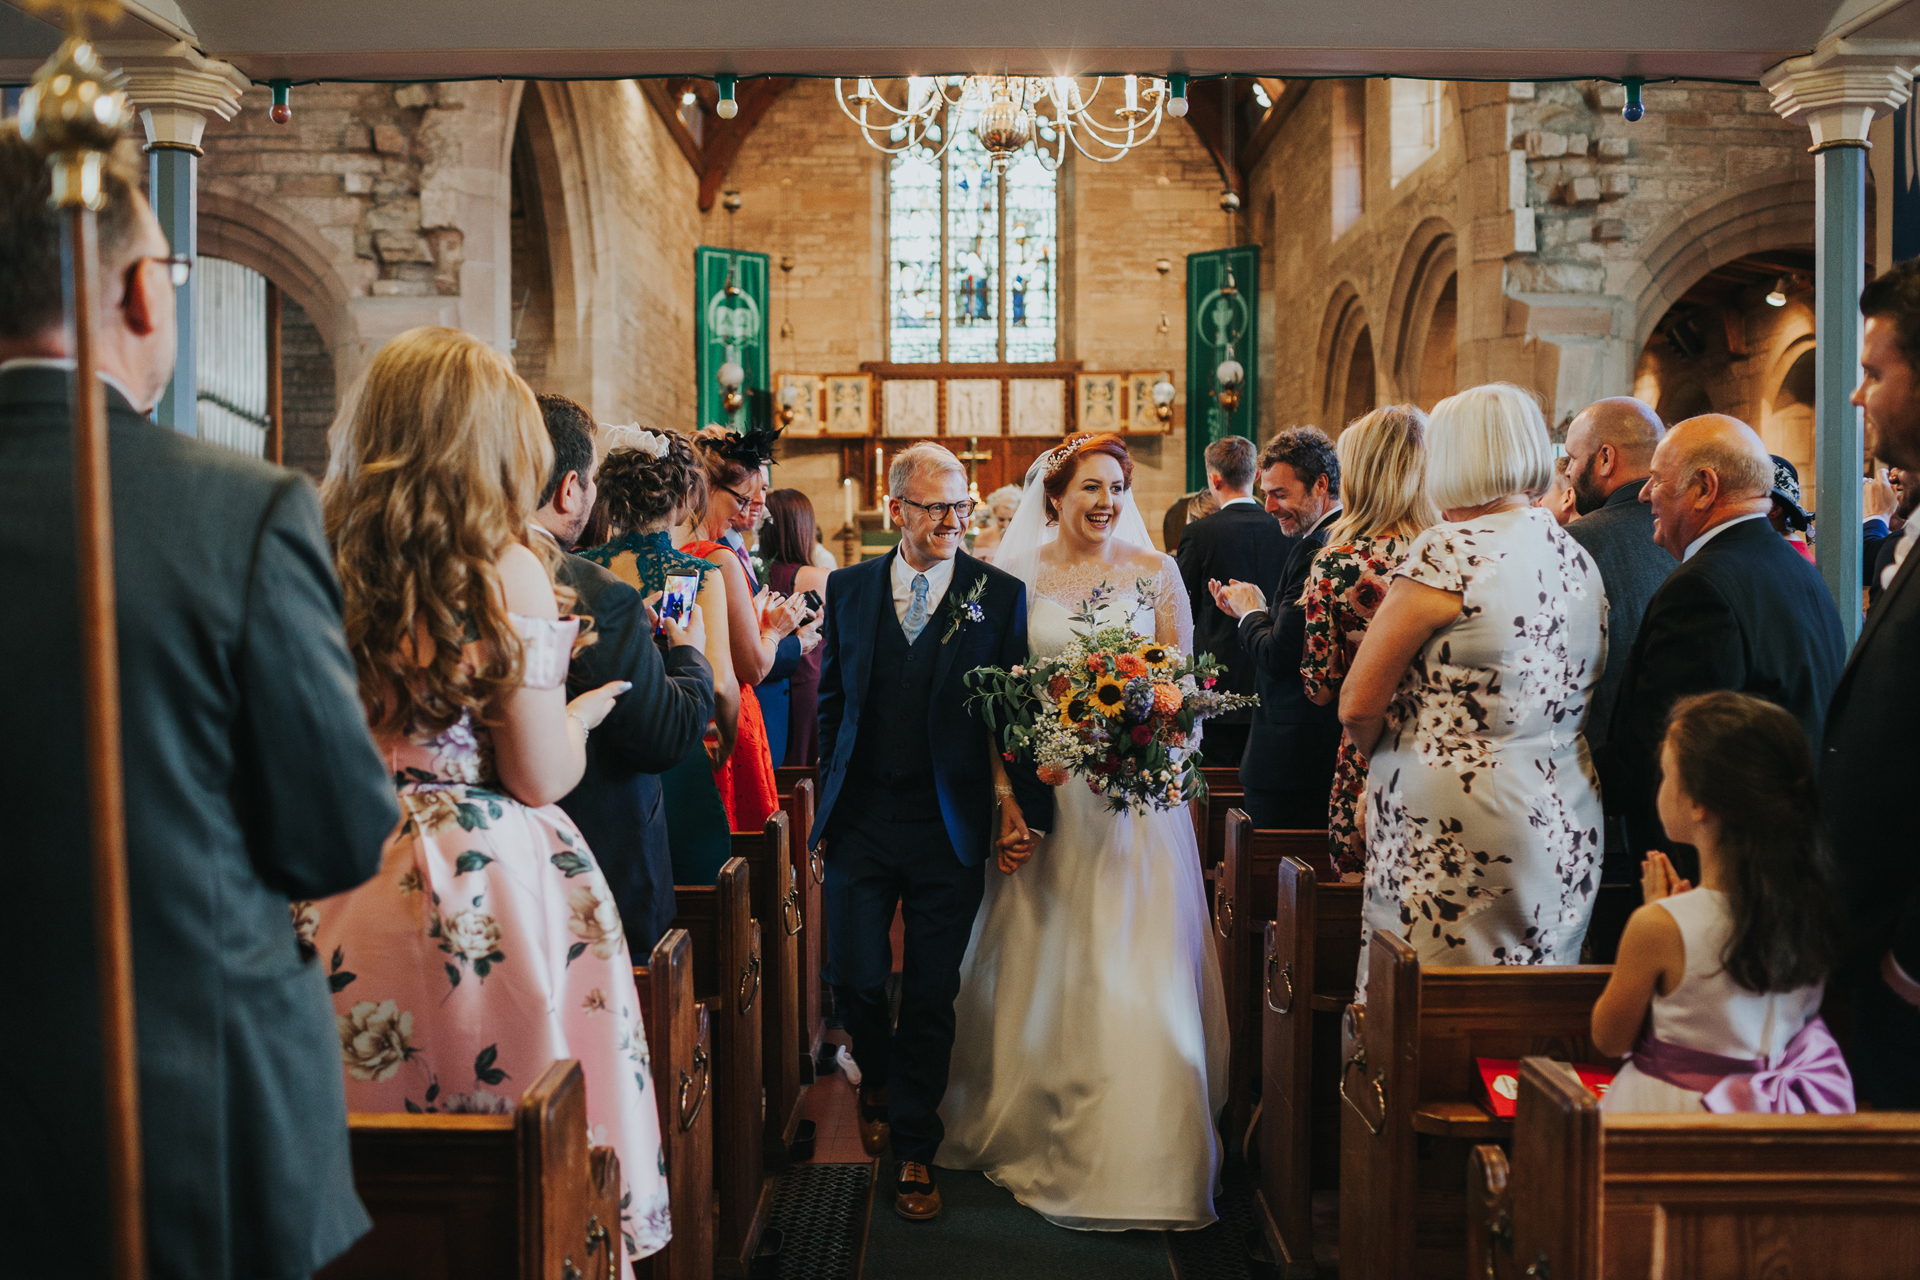 Bride and groom make their way down the aisle as man and wife.